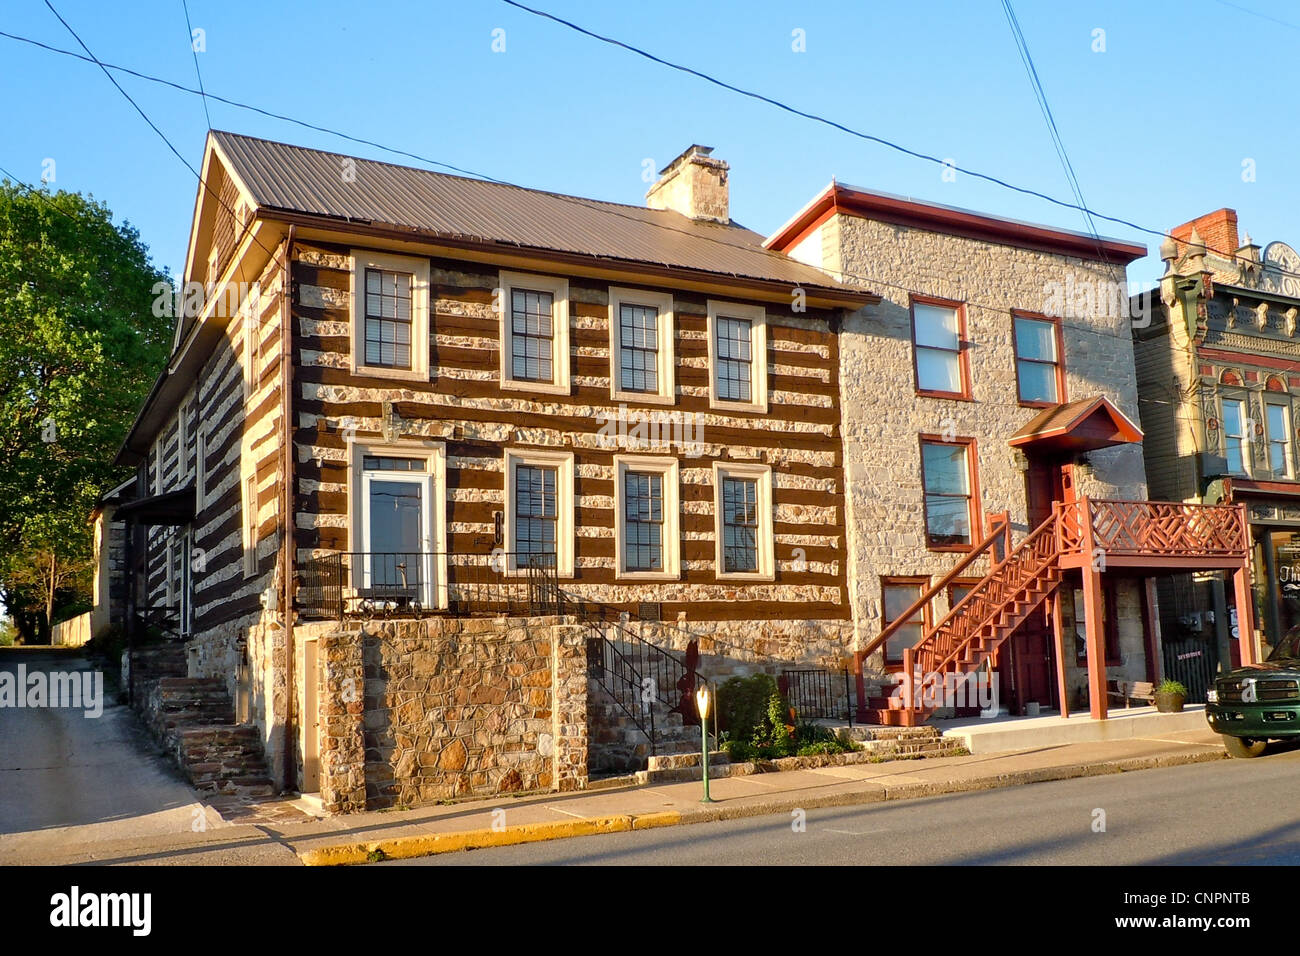 McConnell House on the NRHP since November 21, 1976. At 114 Lincoln Way, McConnellsburg, Fulton County, Pennsylvania - Stock Image